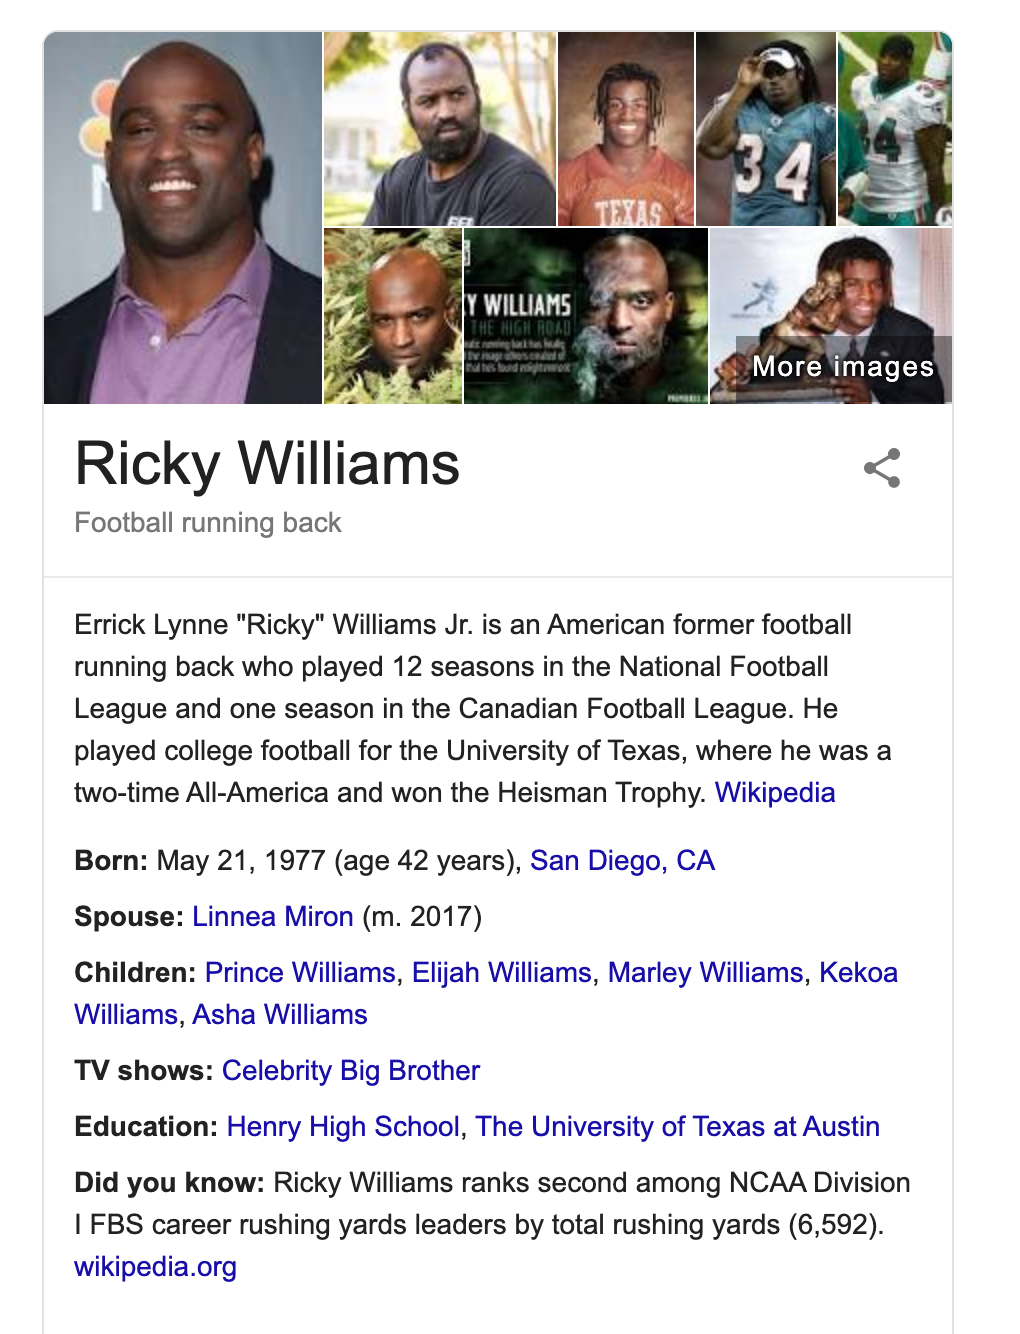 rickywilliams.png